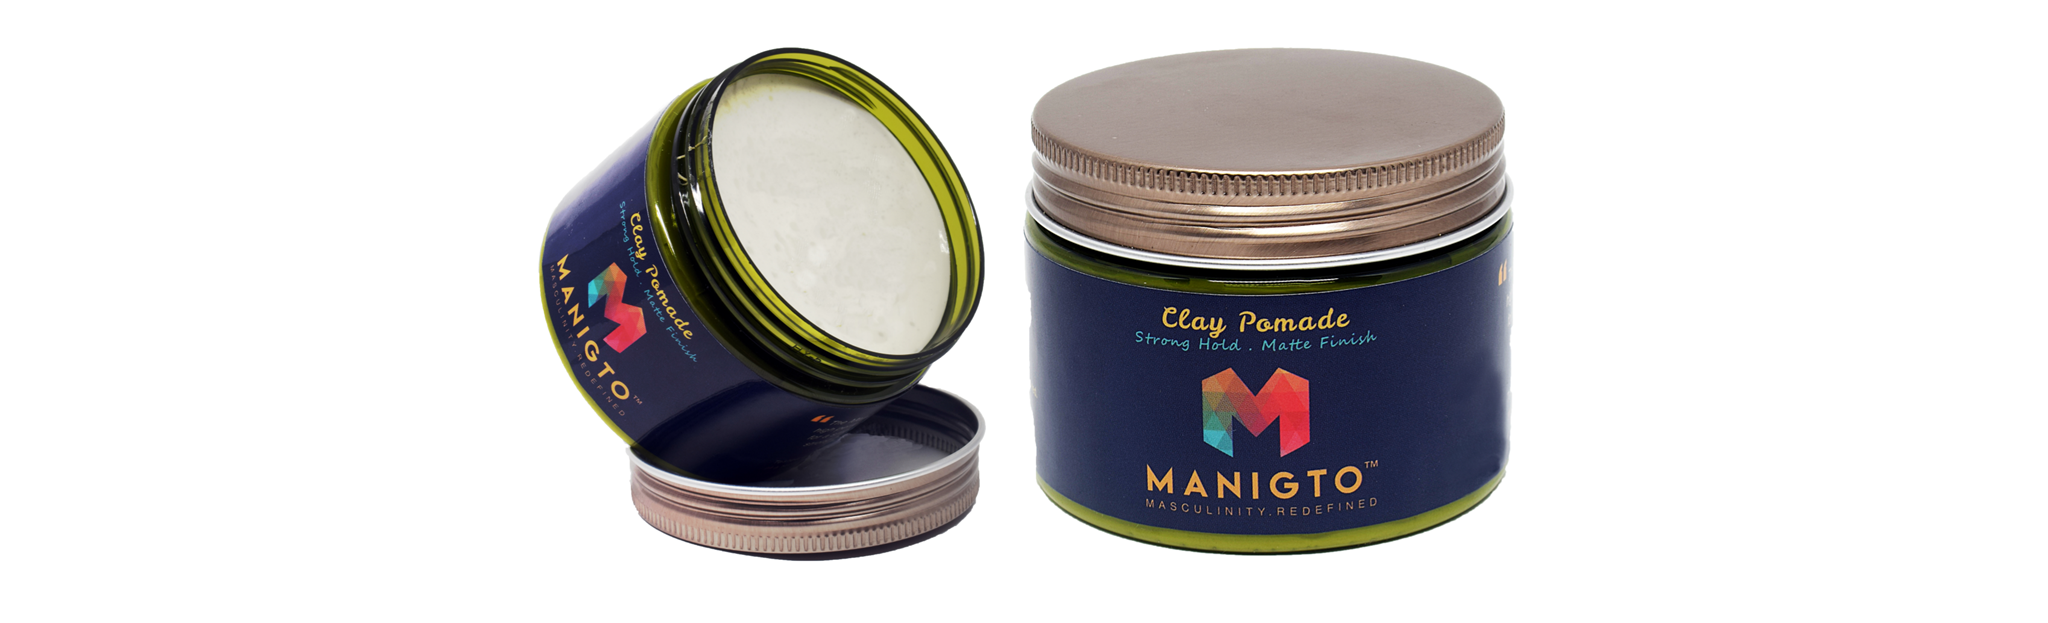 MANIGTO Clay Pomade 150ML / 5.3OZ, HAIR GROOMING - MANIGTO